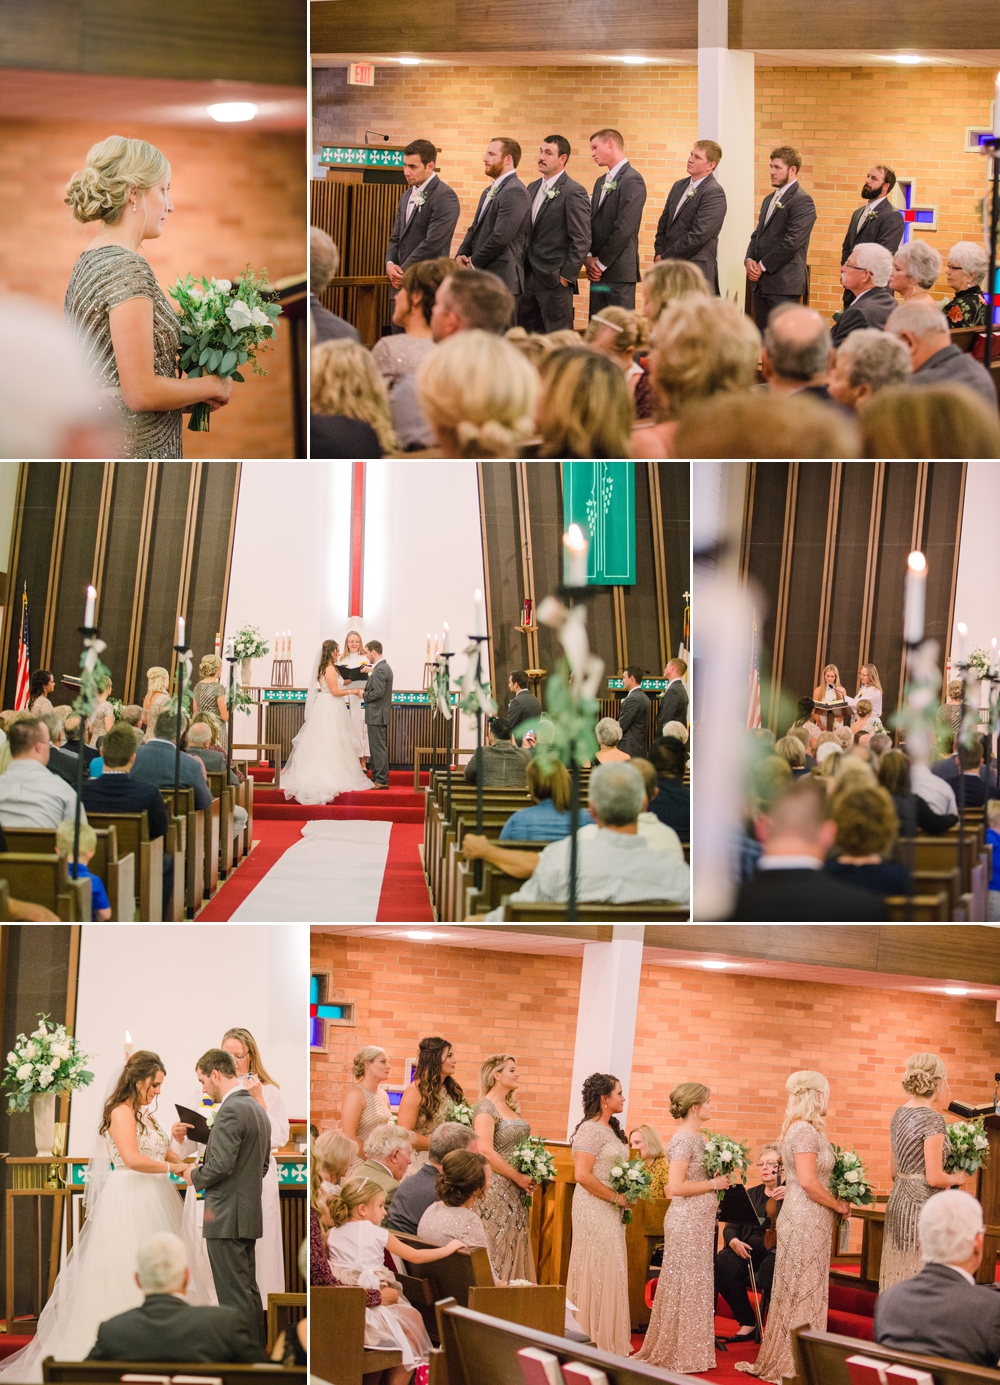 Wedding Photography_Our Saviors Lutheran Church_Humboldt Iowa_ceremony candids_Iowa Wedding Photographer.jpg